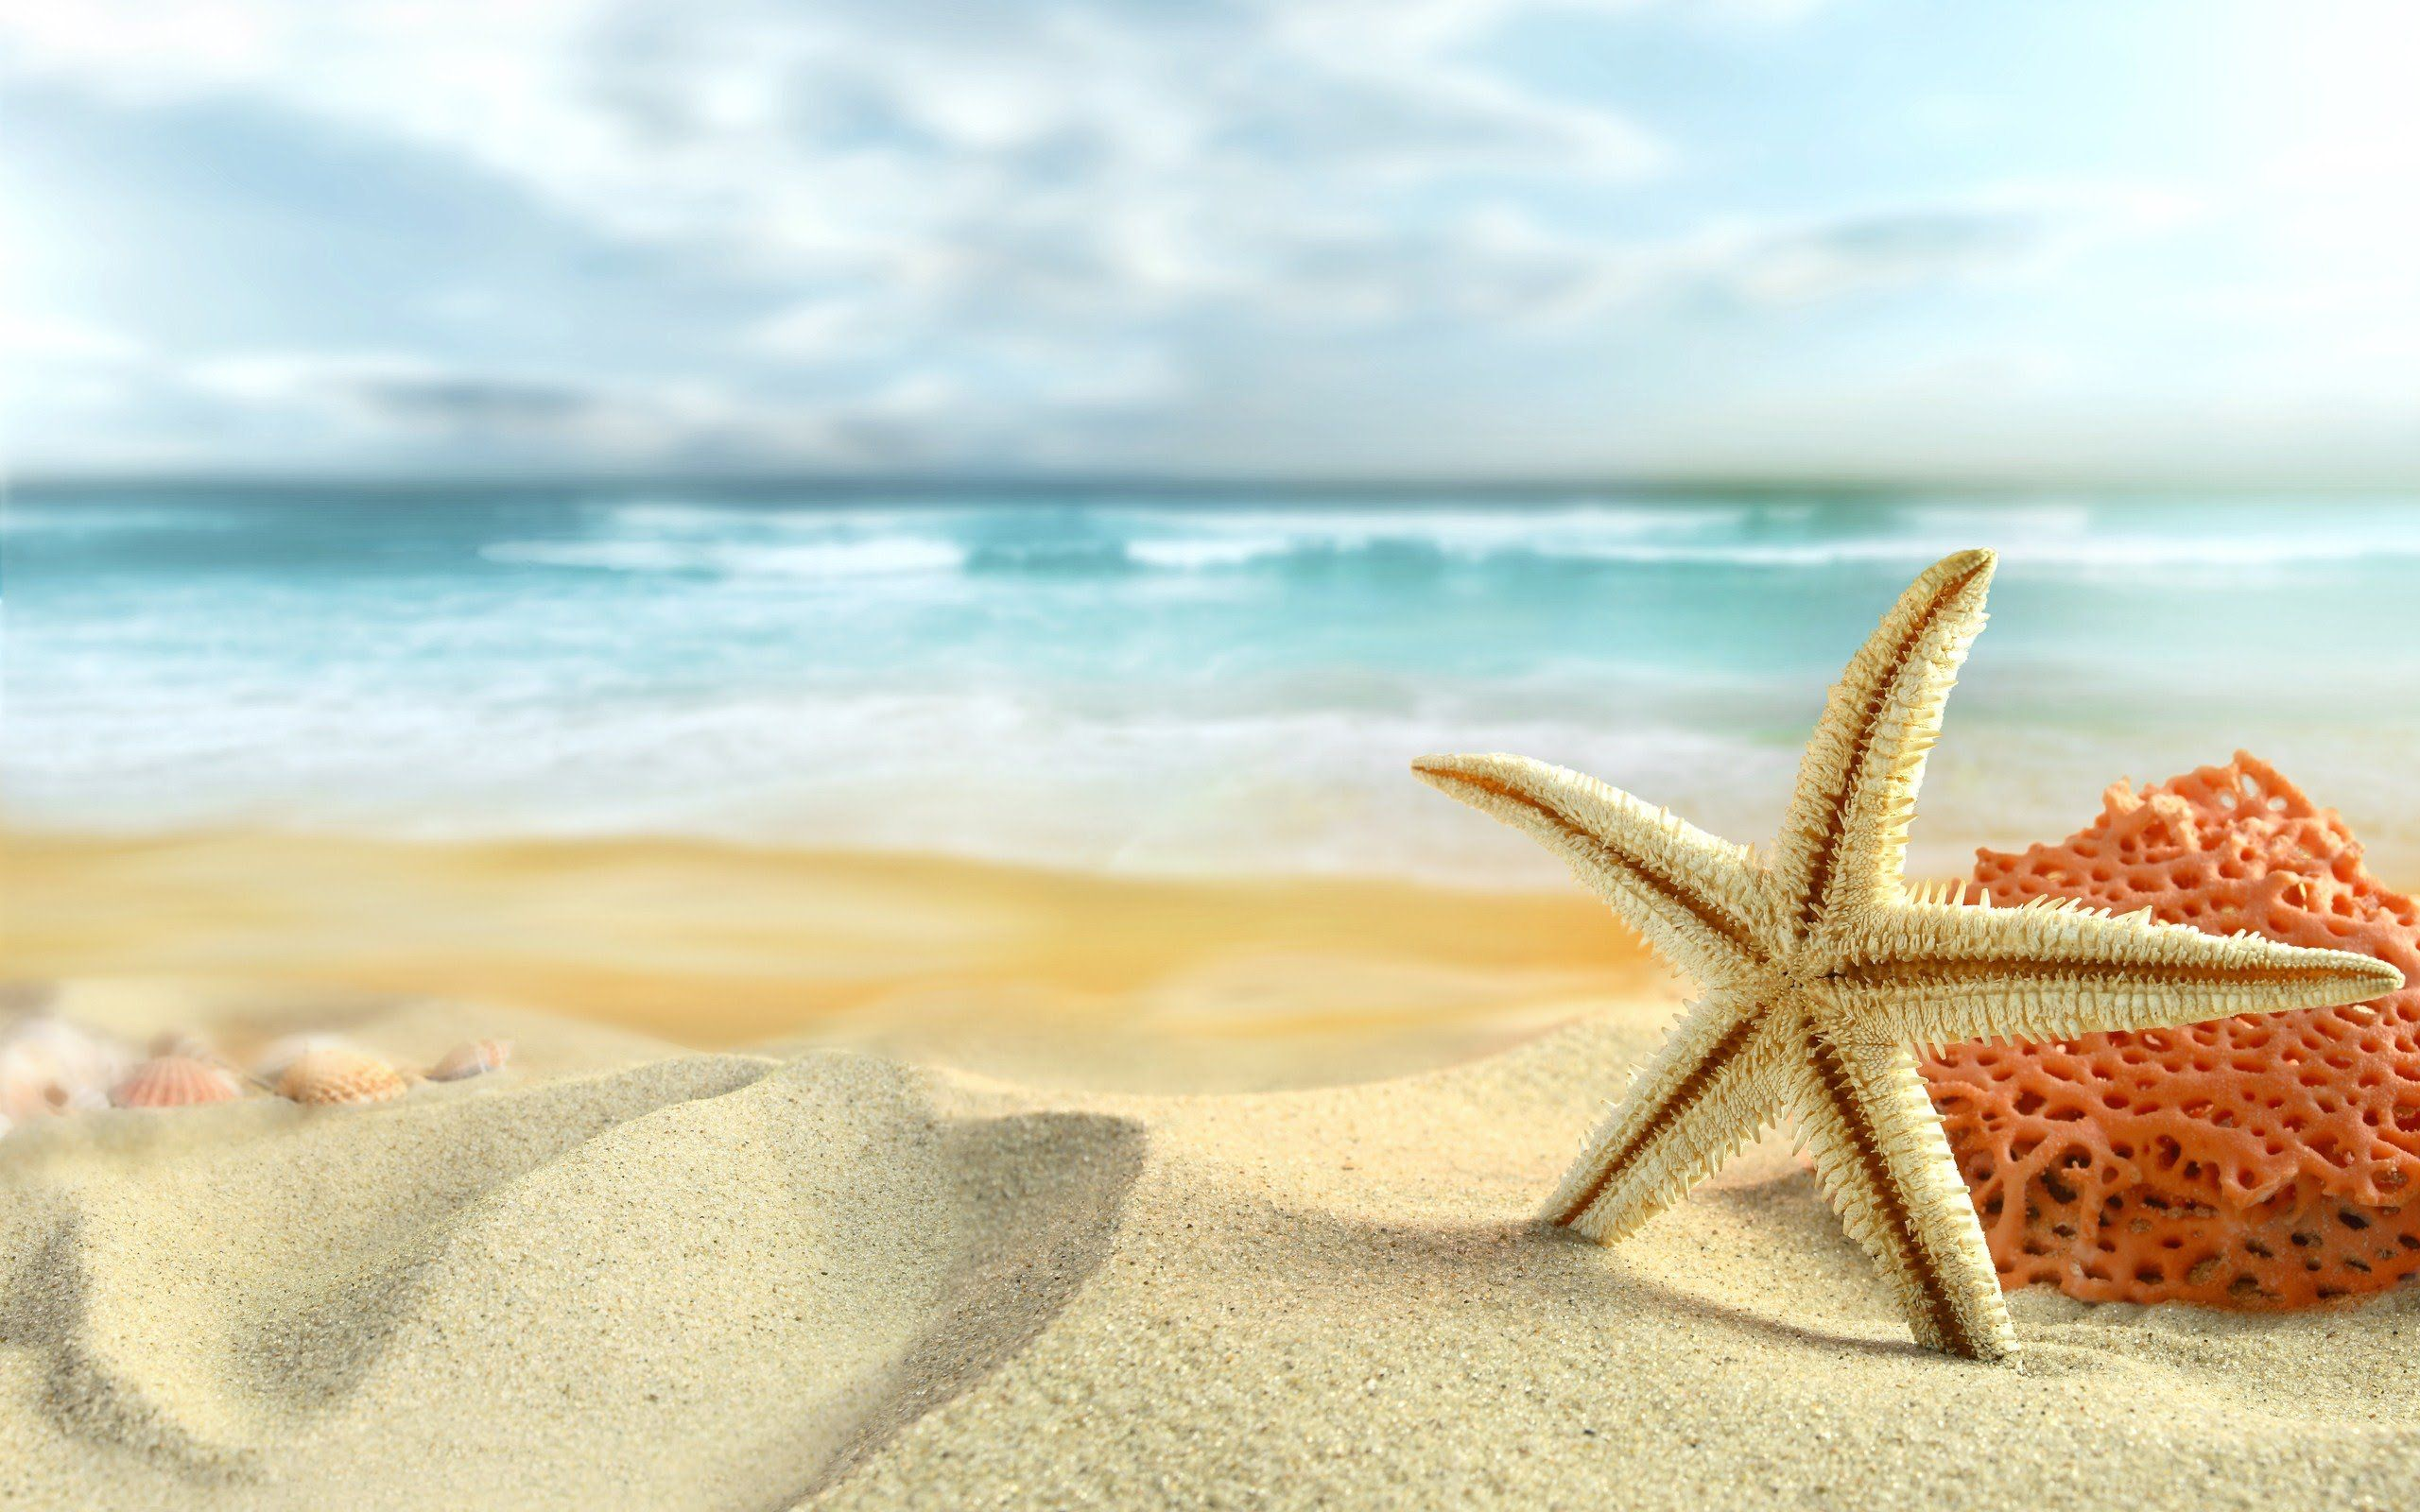 Summer Vacation Wallpapers Top Free Summer Vacation Backgrounds Wallpaperaccess